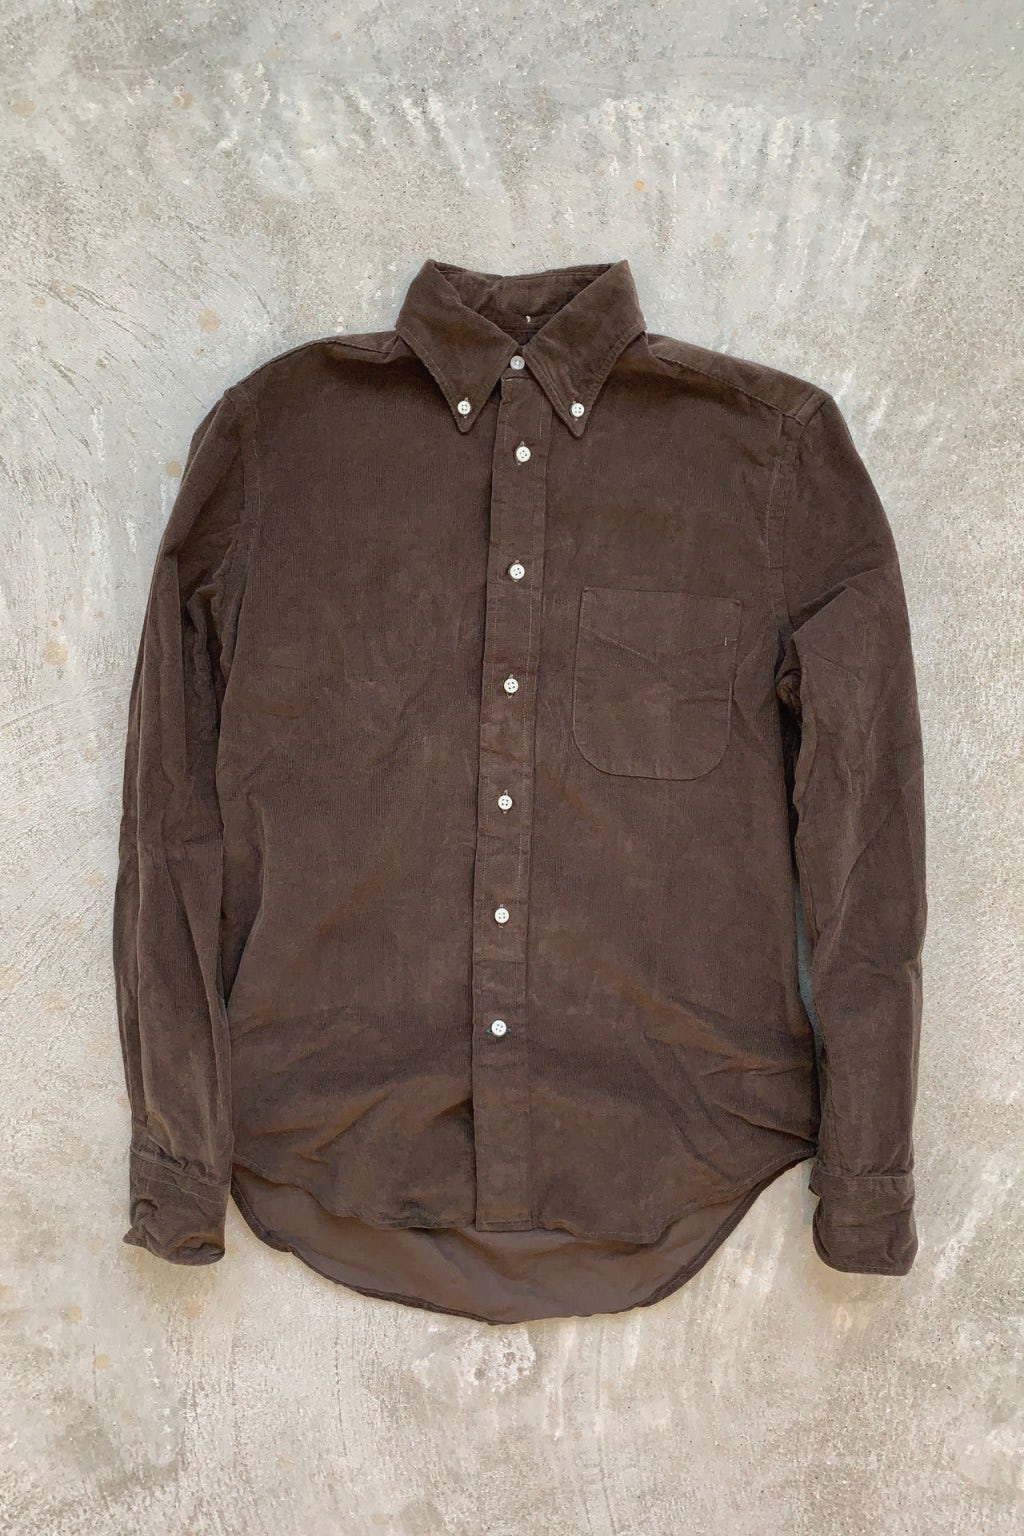 Gitman Bros. Vintage Long Sleeve Button Down  Brown Corduroy